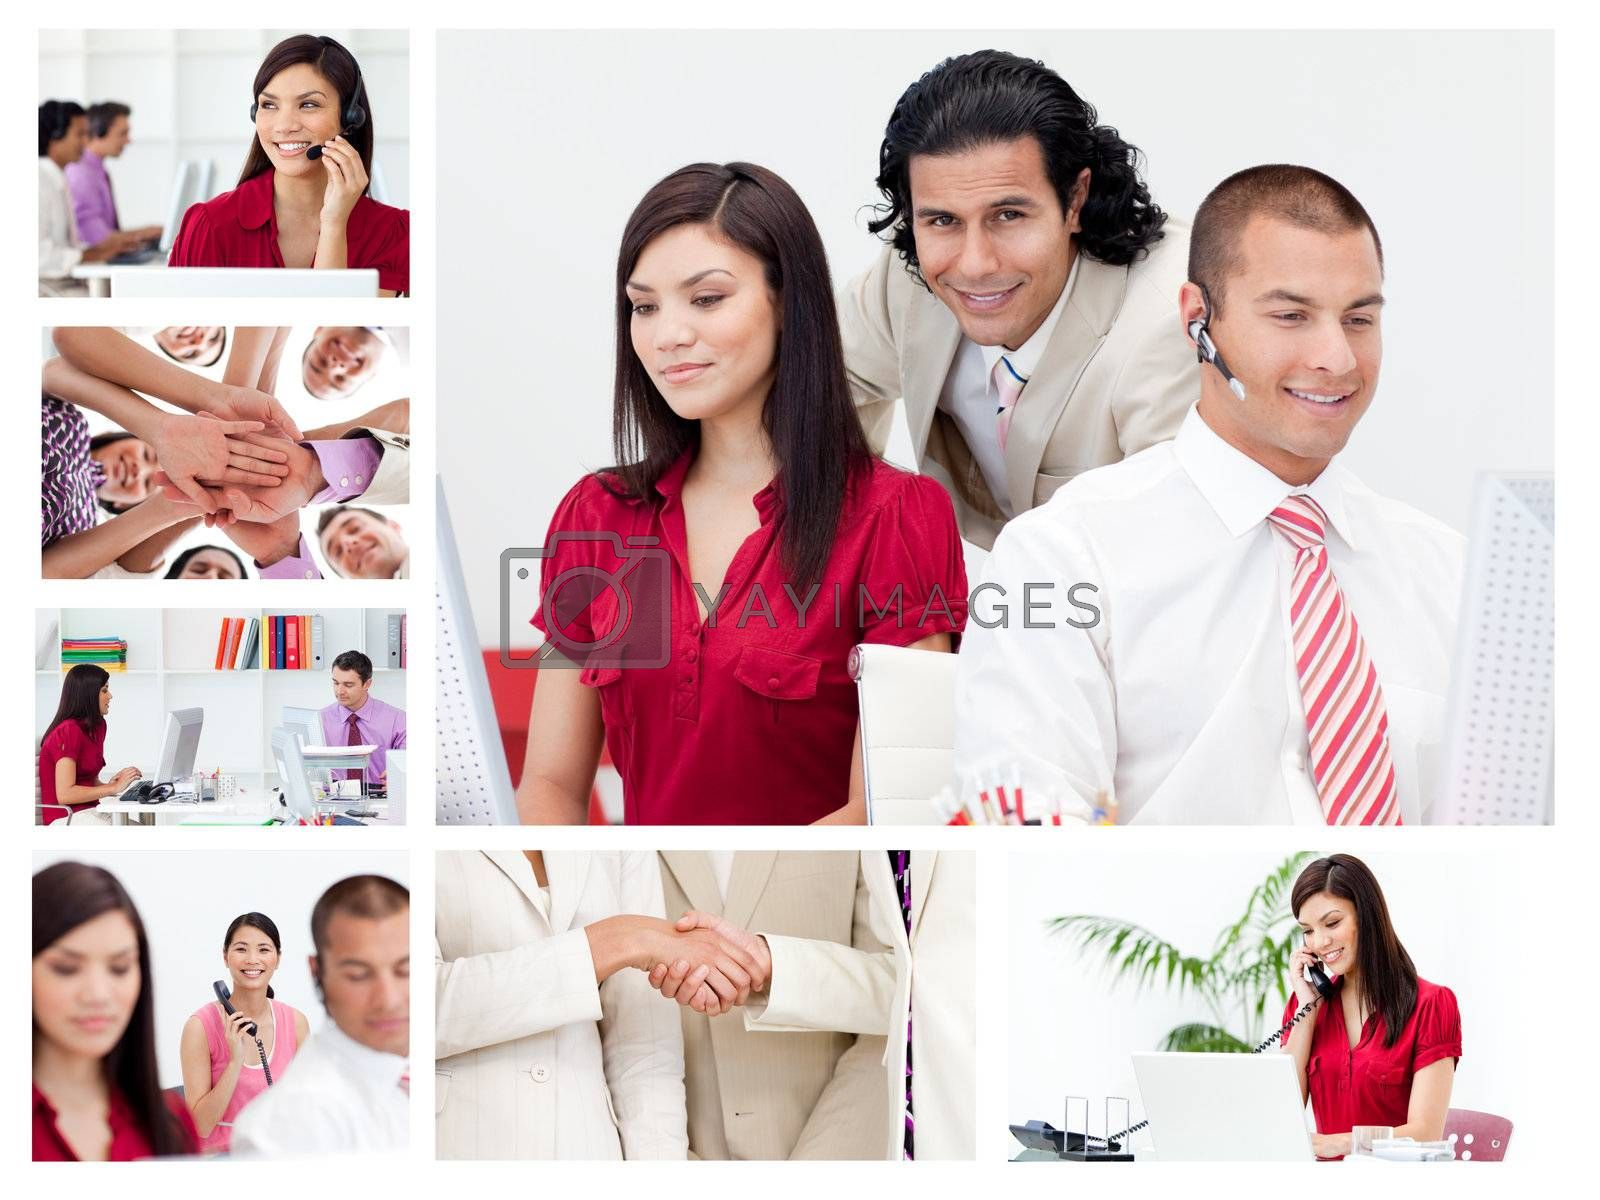 Collage of working business people